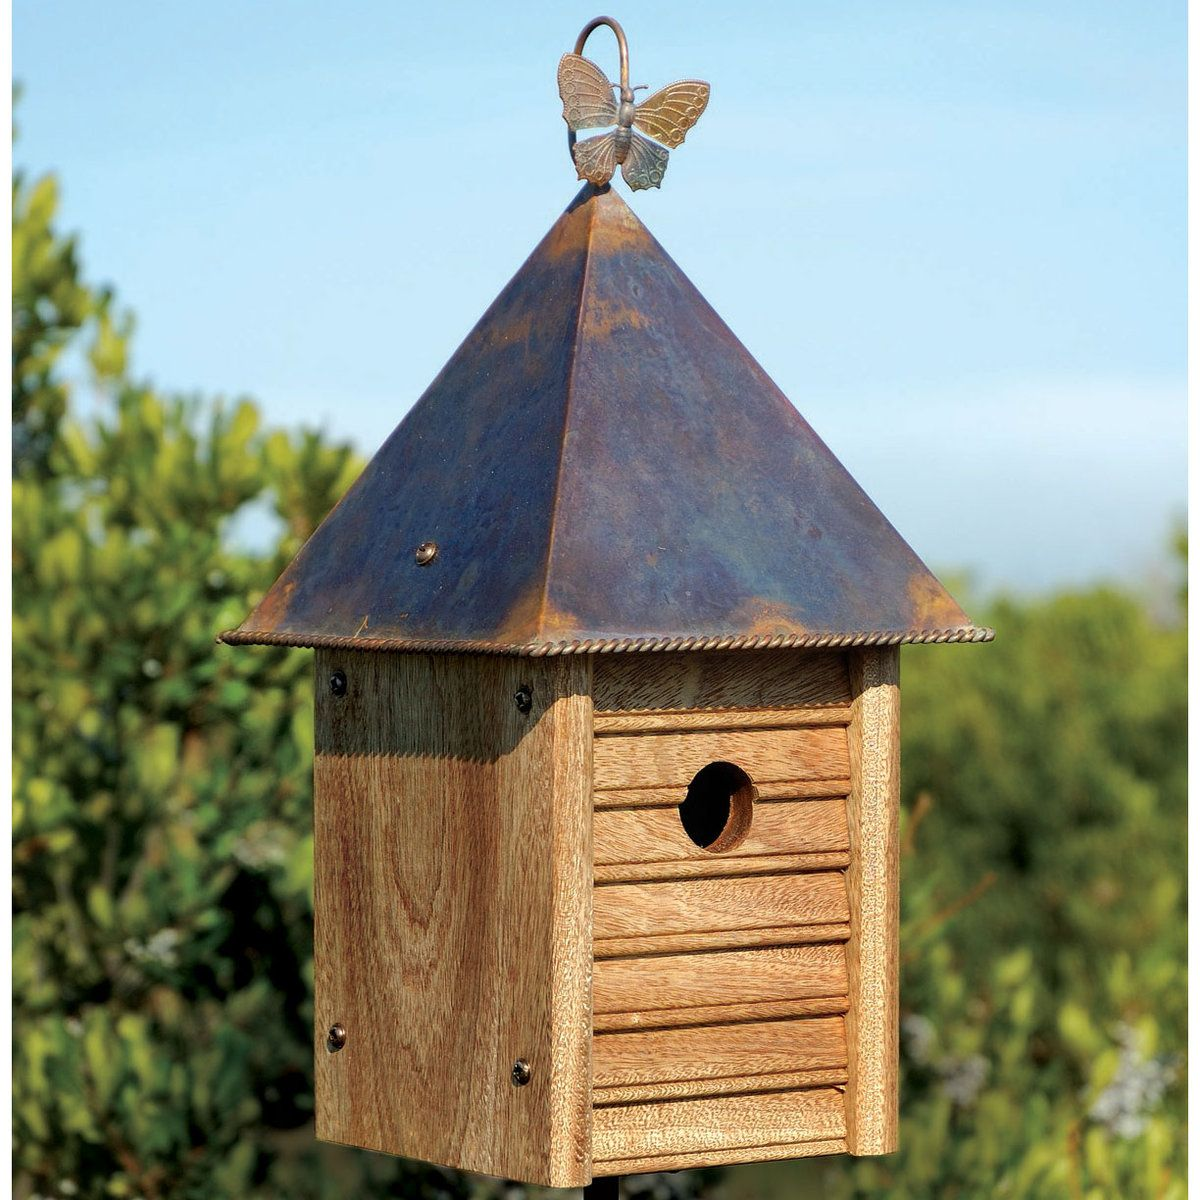 21 Lovely Diy Lifehacks That Use A Penny Woohome Bird Houses Bird Houses Diy Bird House Kits